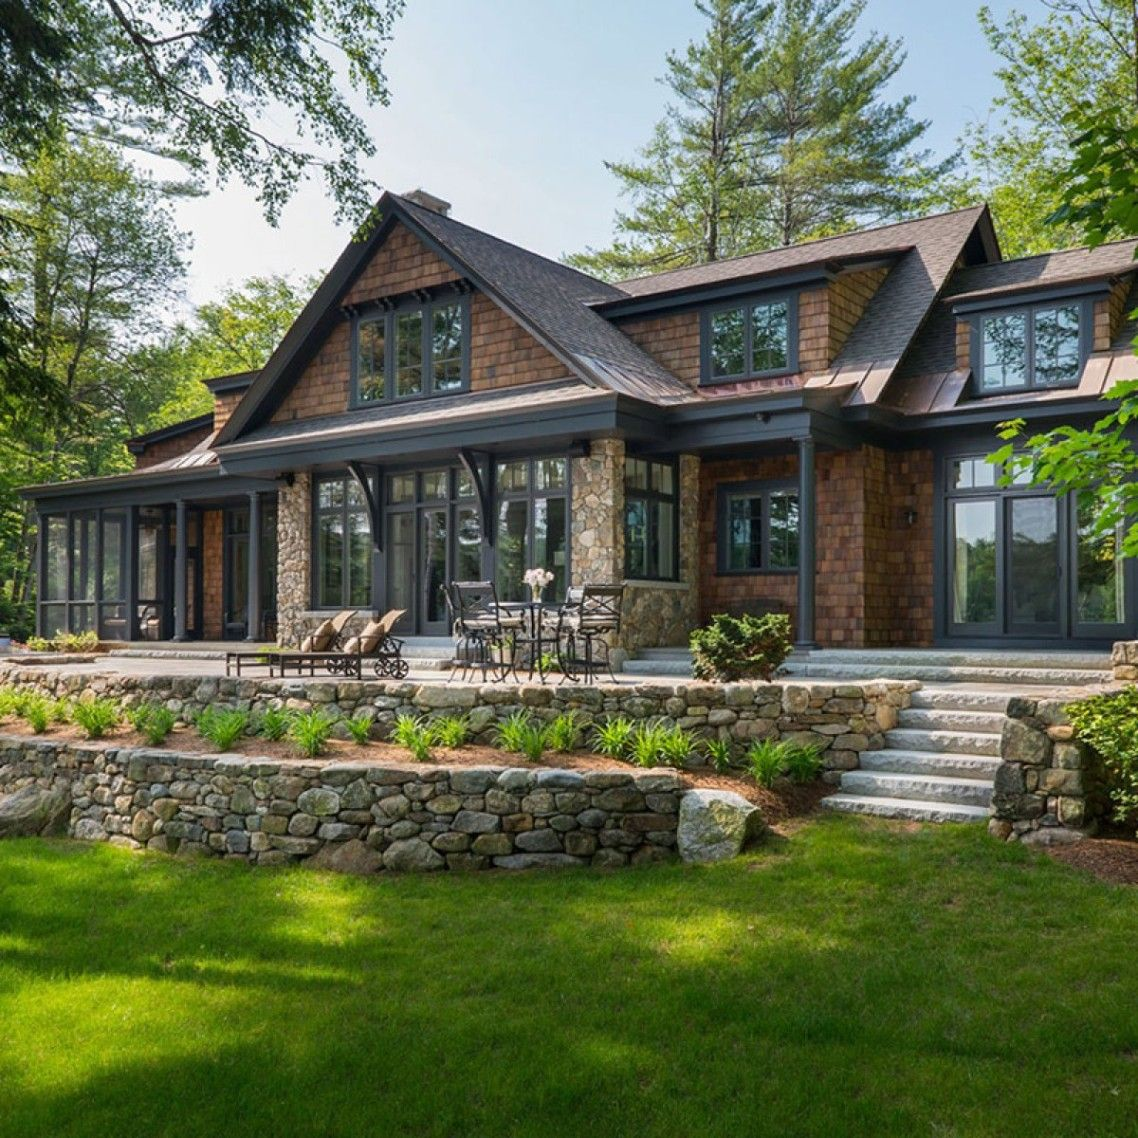 2015 Home Of The Year Winner: Birch Bay House   New Hampshire Home    March April 2015